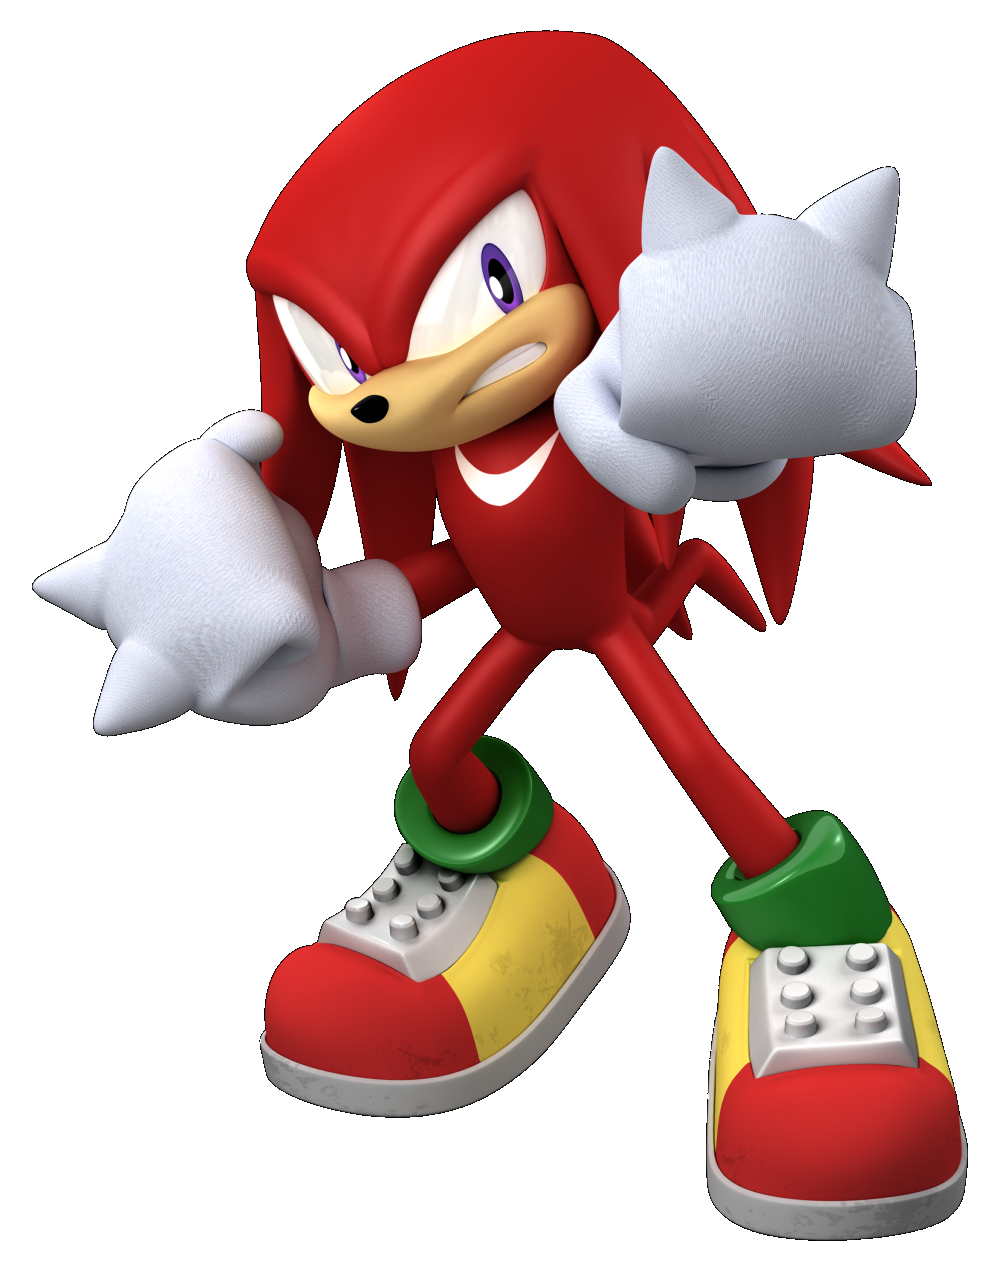 http://rozup.ir/view/1082583/Knuckles_The_Echidna_(2).png